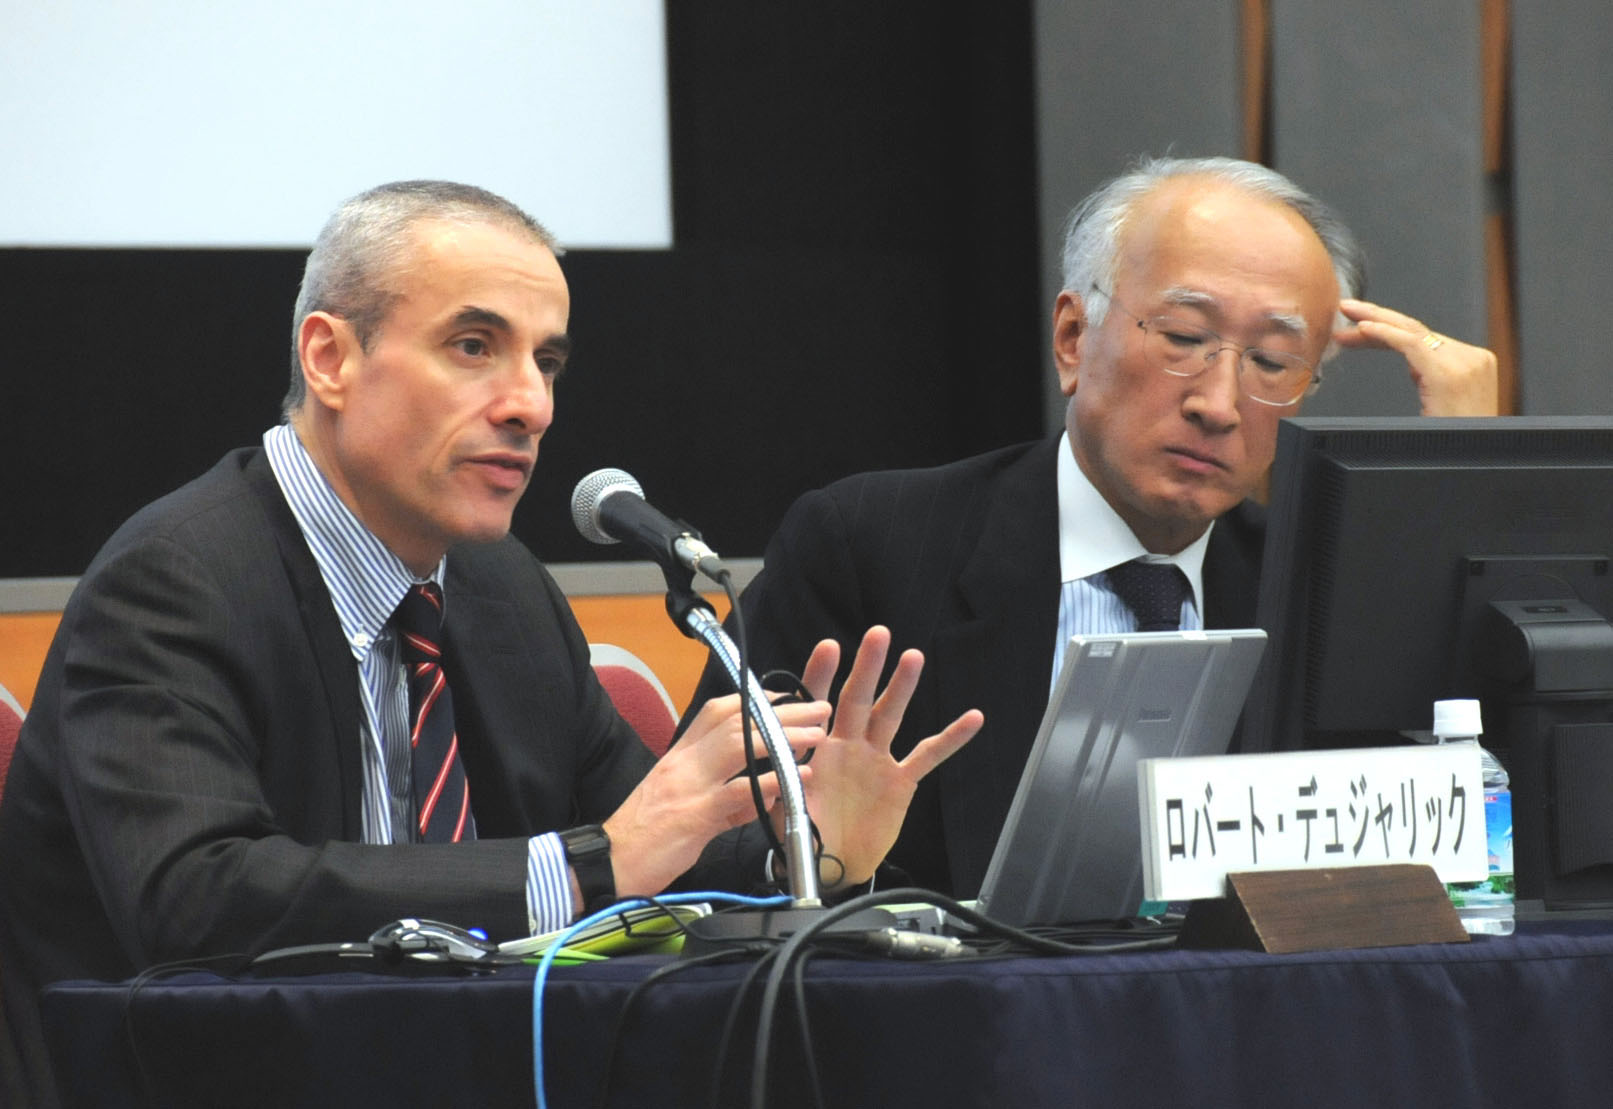 Robert Dujarric (left) from Temple University's Japan Campus, discusses Japan's energy diplomacy during an Oct. 30 seminar in Tokyo as his co-panelist Nobuo Tanaka from the Institute of Energy Economics listens. | SATOKO KAWASAKI PHOTOS